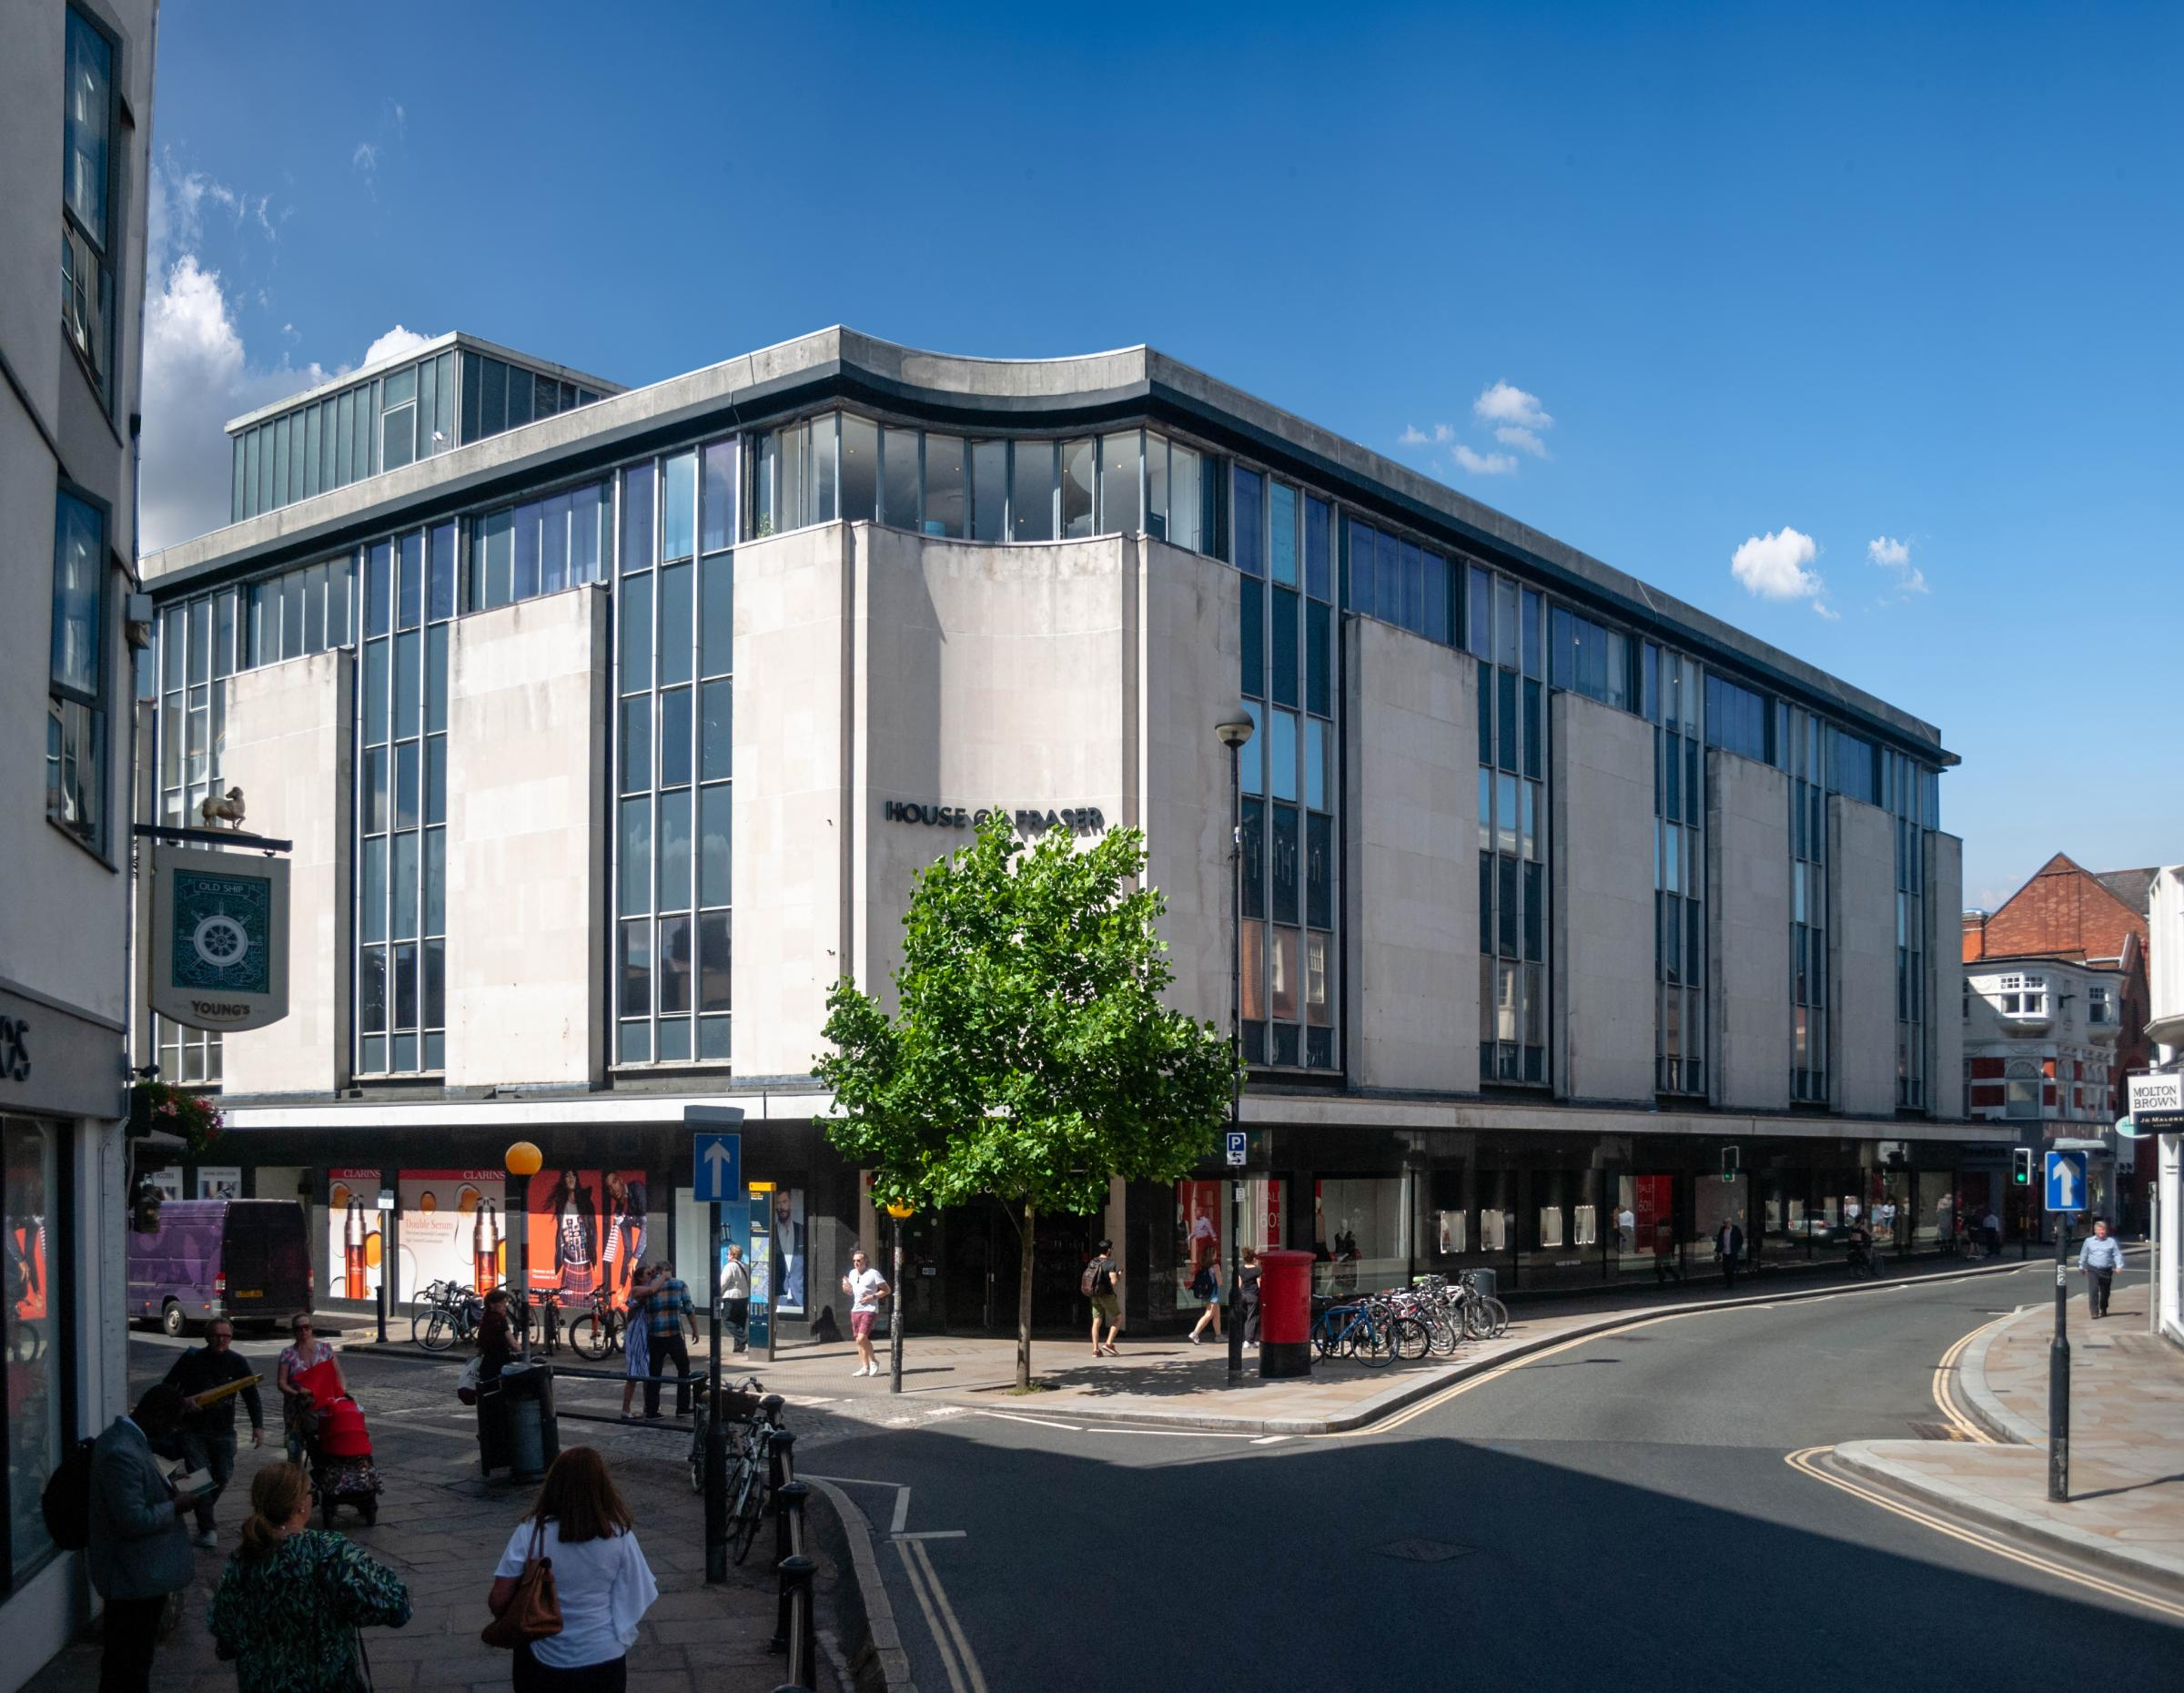 House of Fraser, Richmond - Existing view